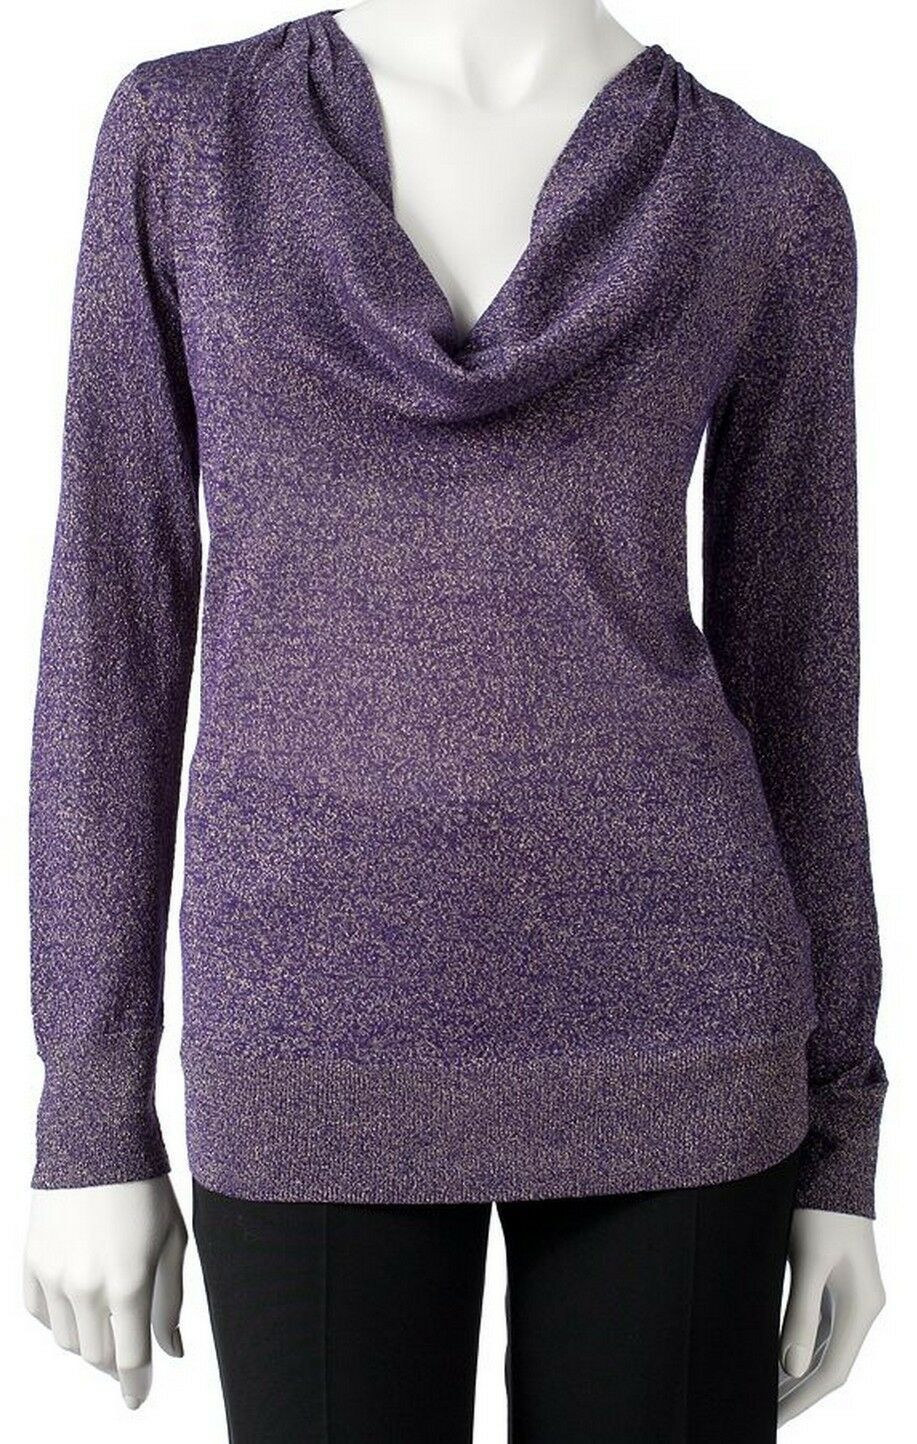 Primary image for Dana Buchman Purple Metallic Lurex Cowlneck Sweater Blouse Top